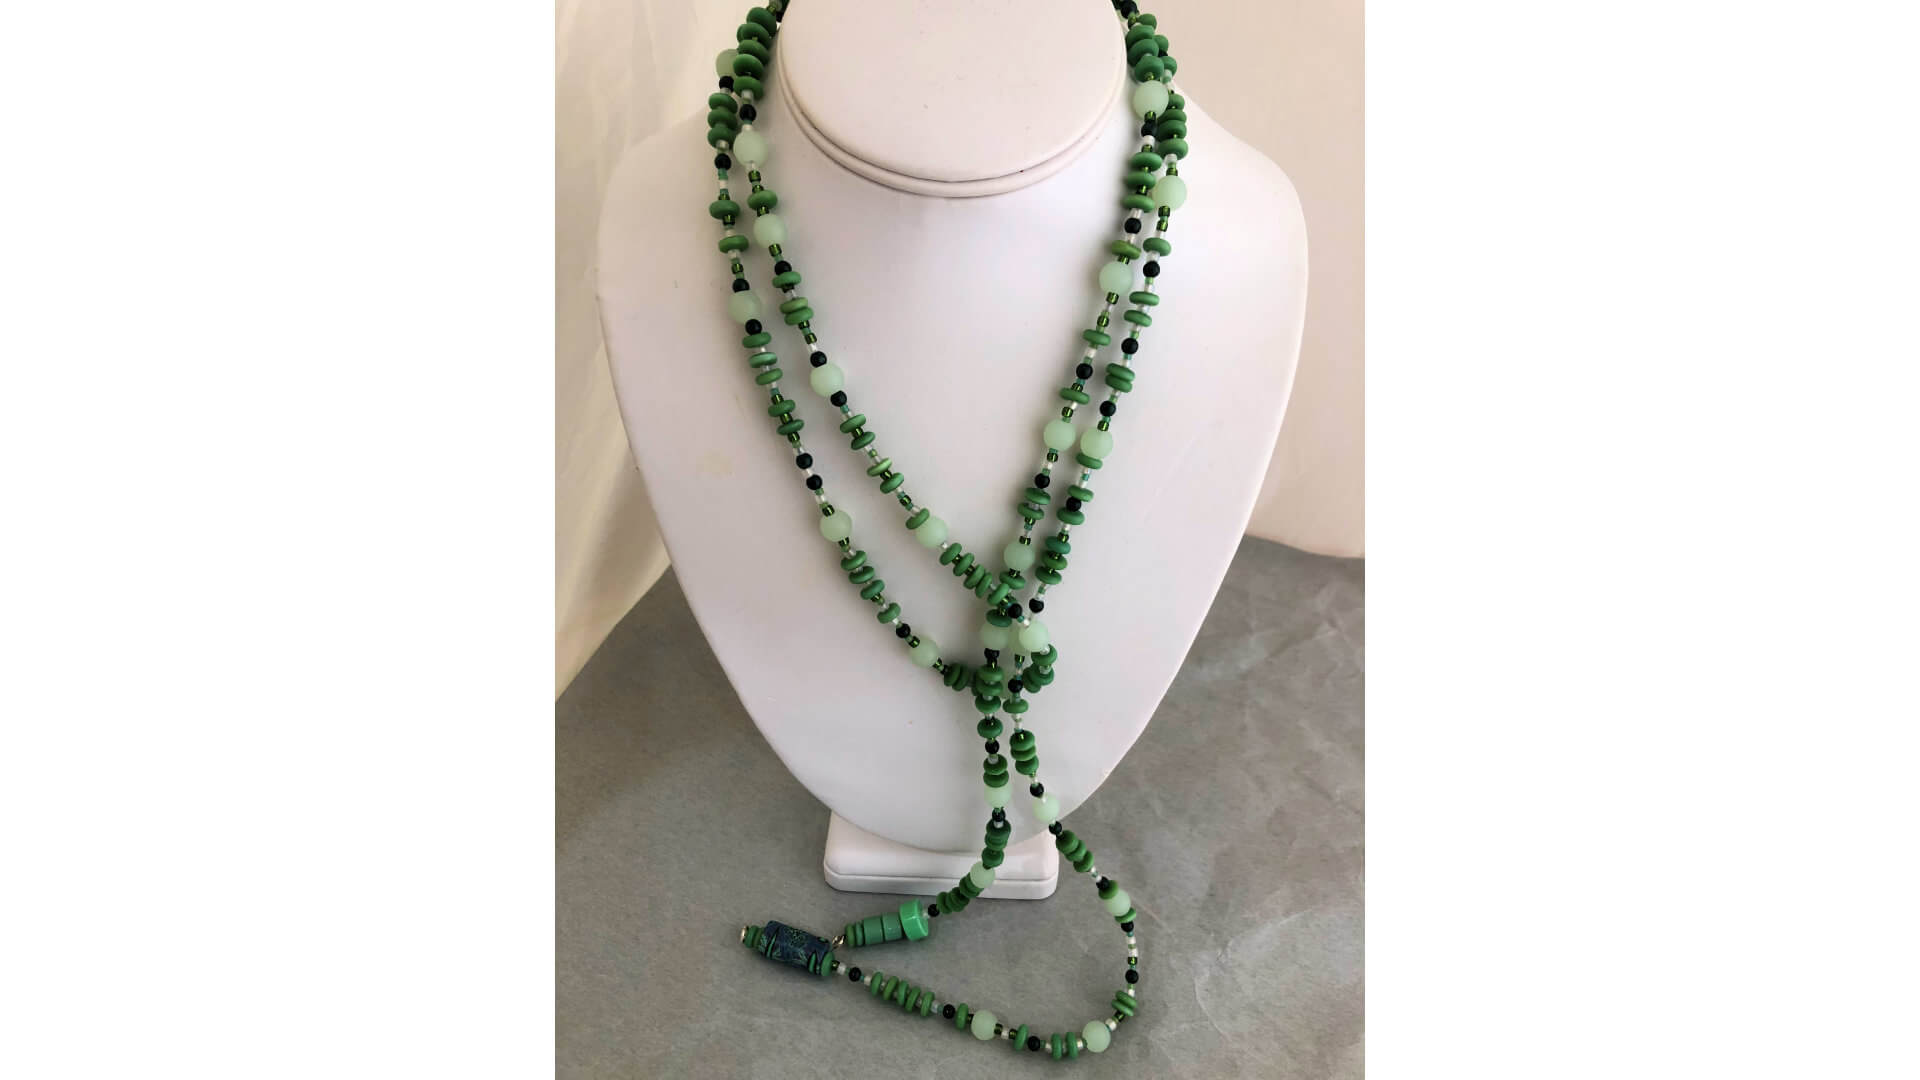 Green Beaded Lariat Necklace by Susan Hazer Designs